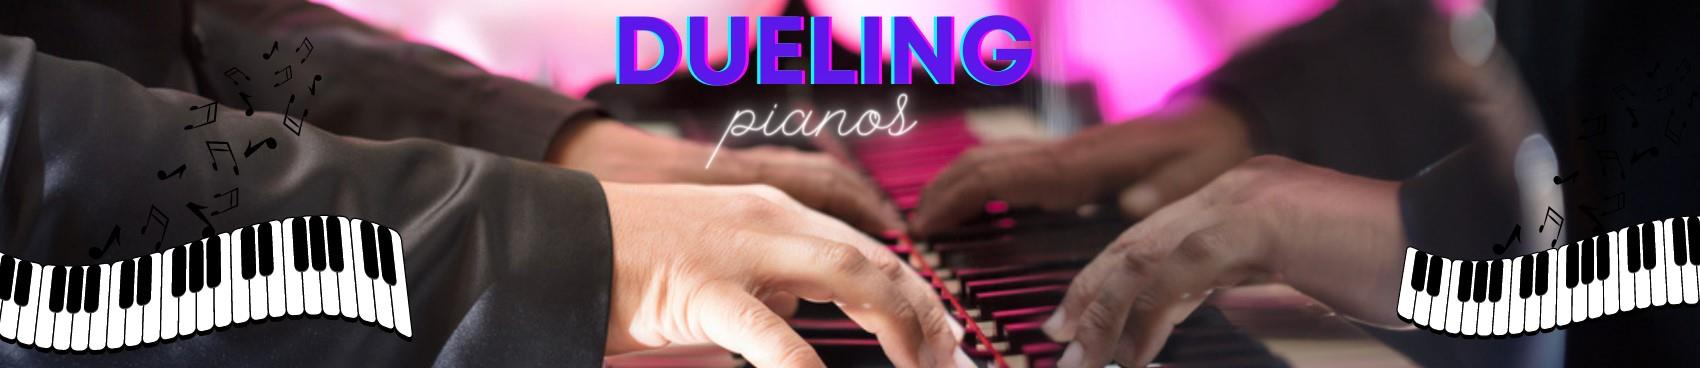 Dueling Pianos!